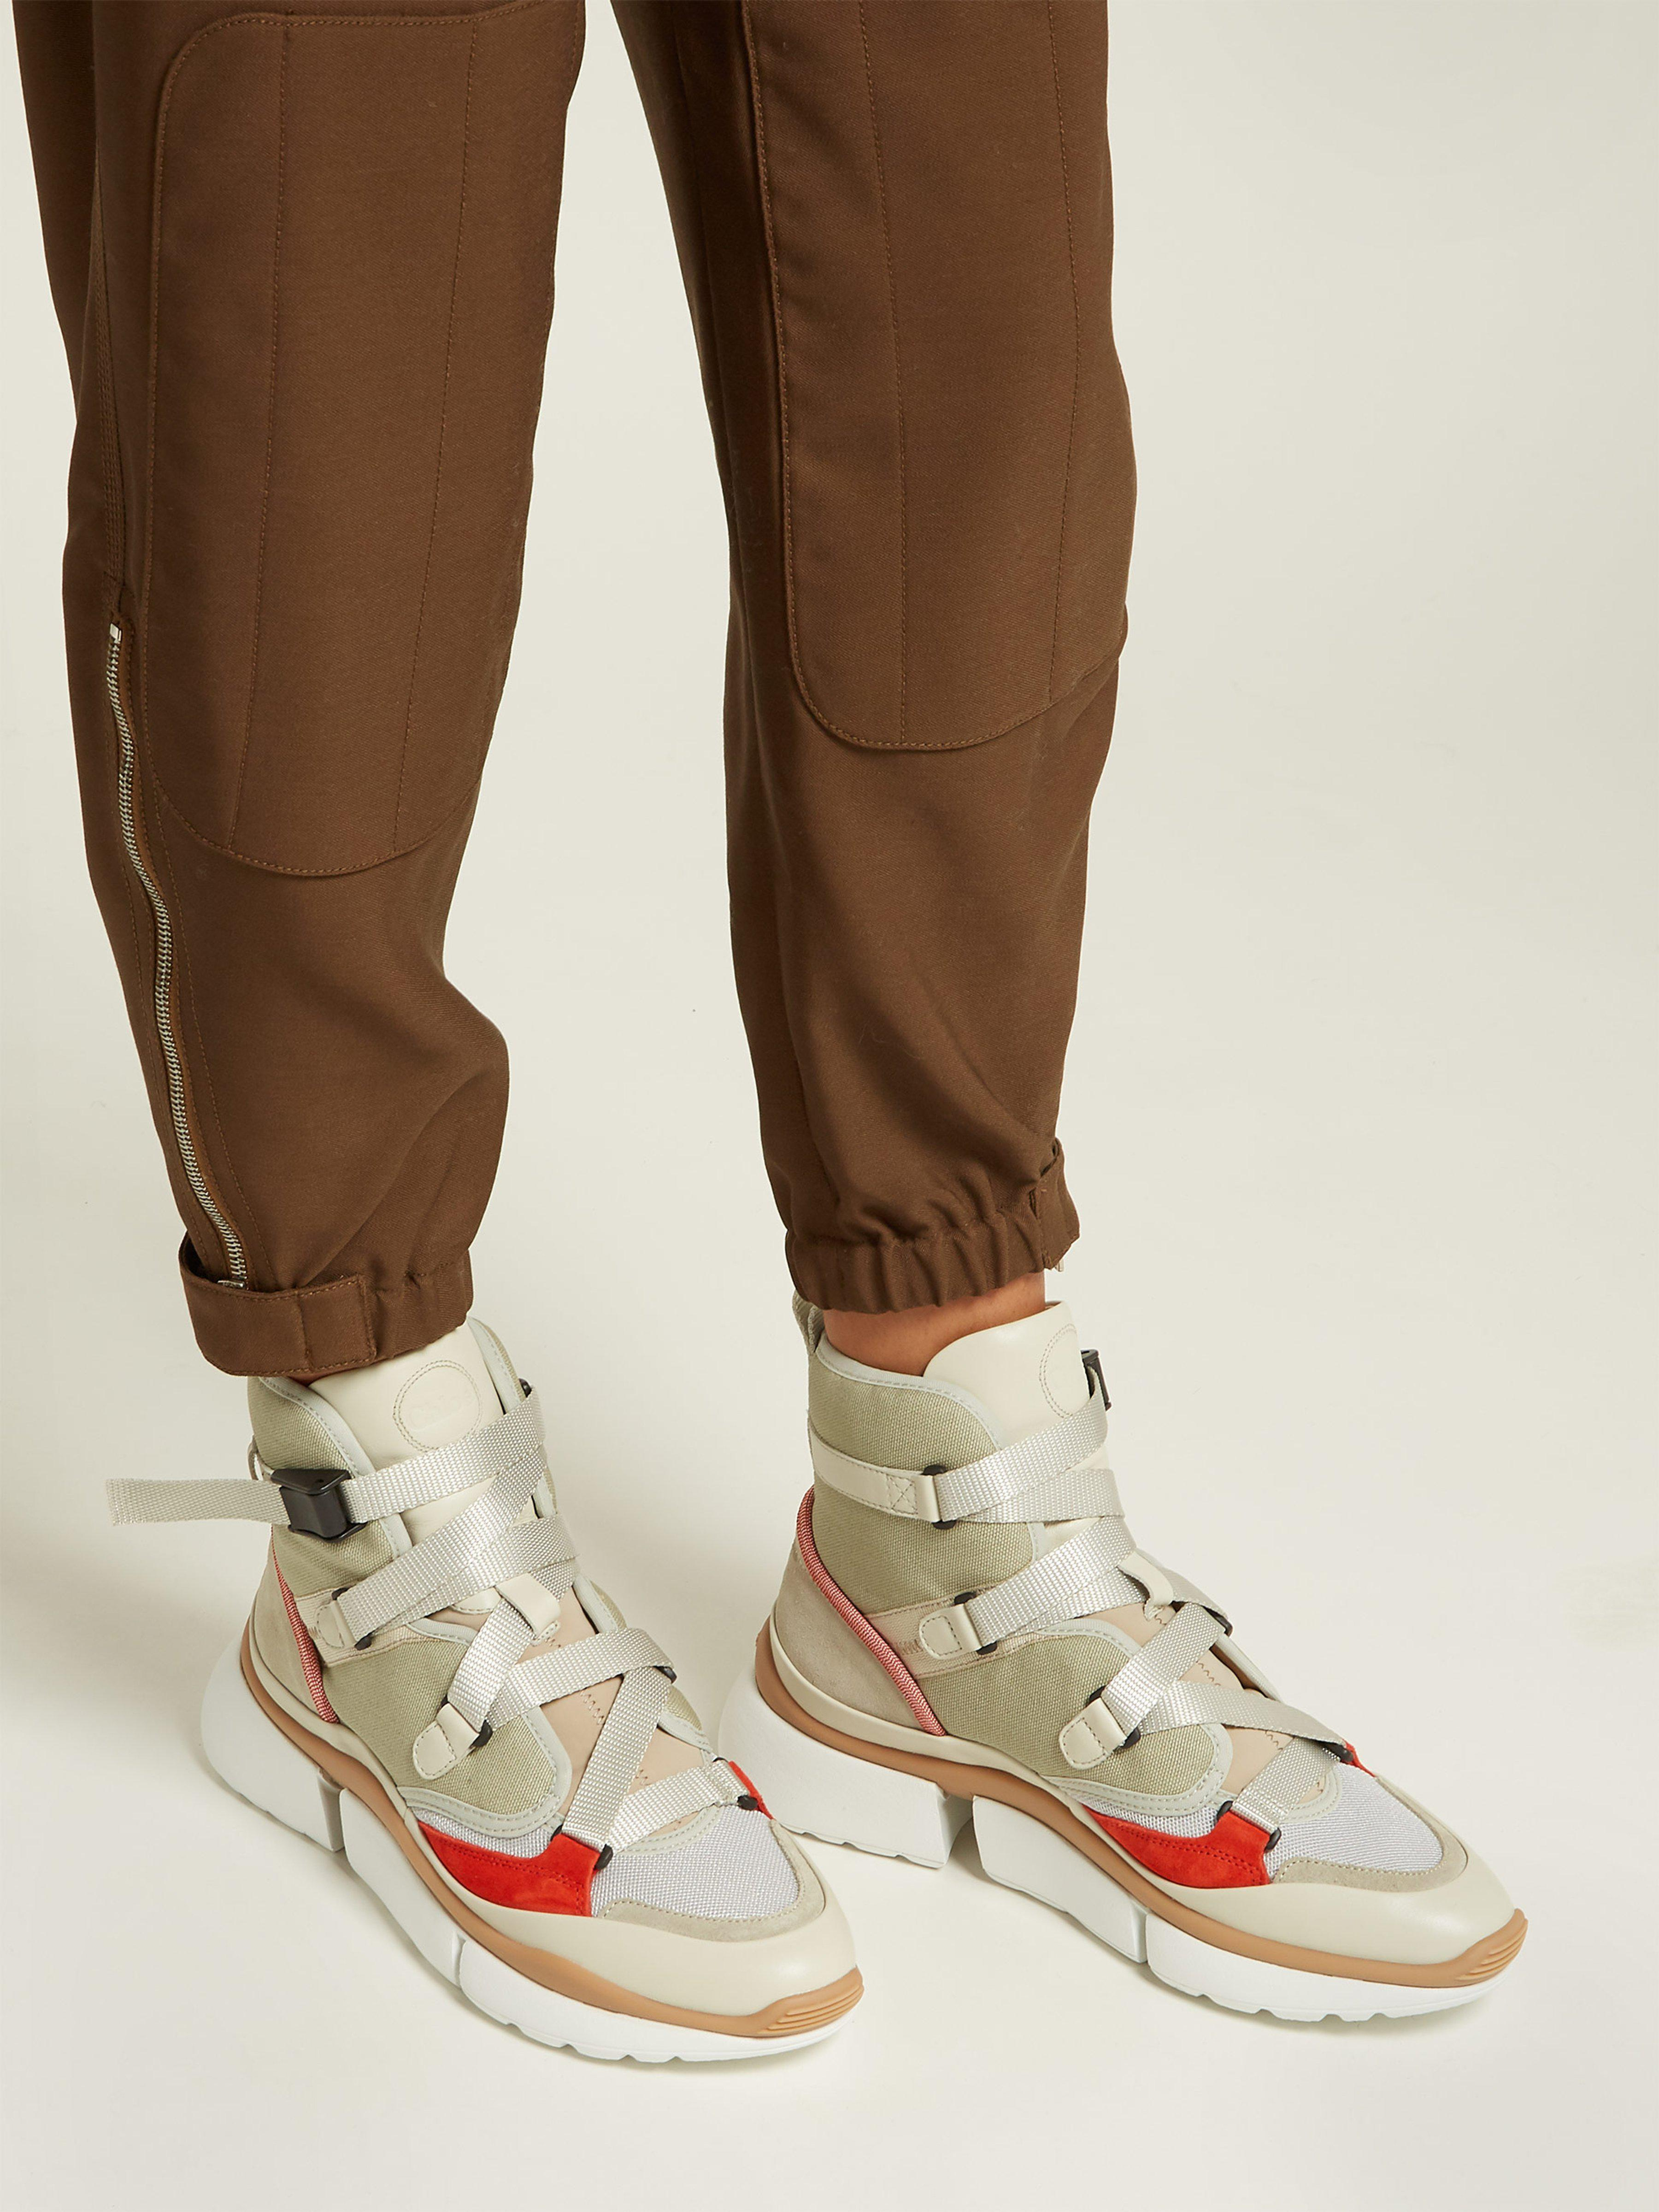 Chloé Canvas Sonnie High-top Trainers in Grey